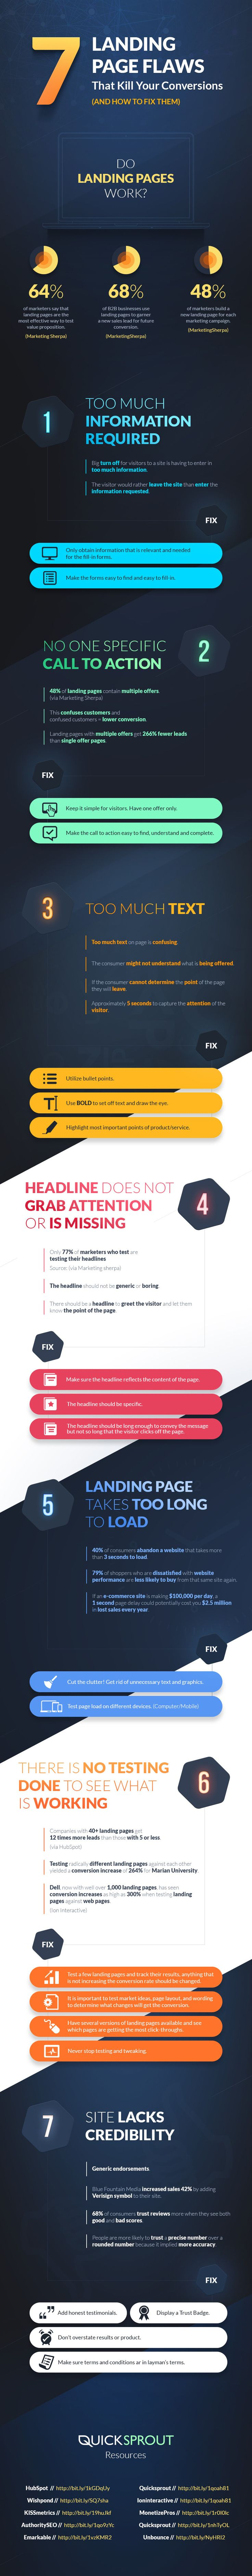 Infographic: 7 Landing Page Flaws That Kill Your Conversions #infographic